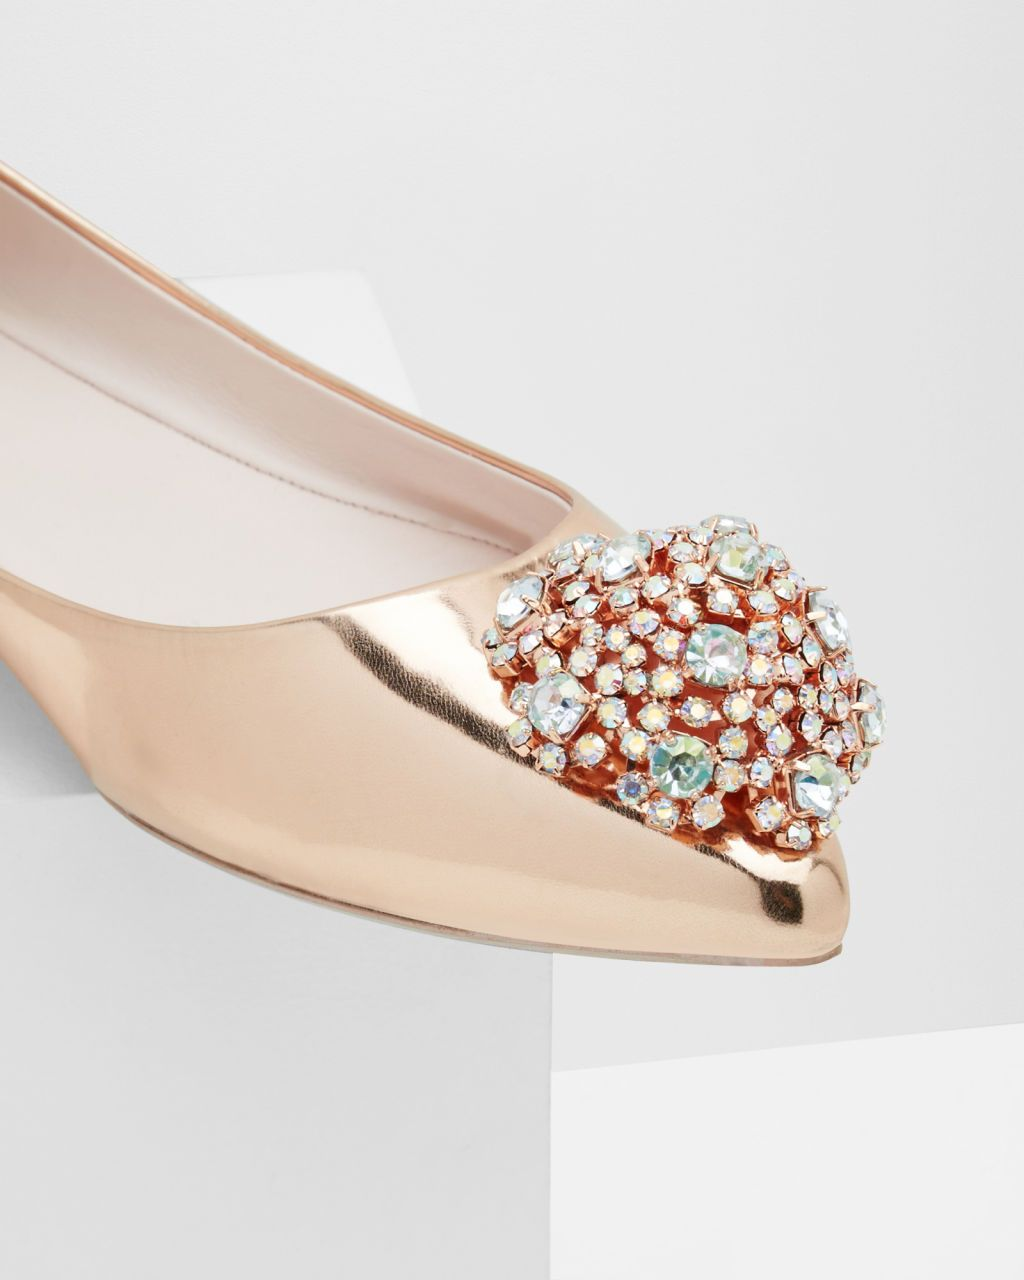 Embellished pointed toe flats - Rose Gold | Footwear | Ted Baker ROW